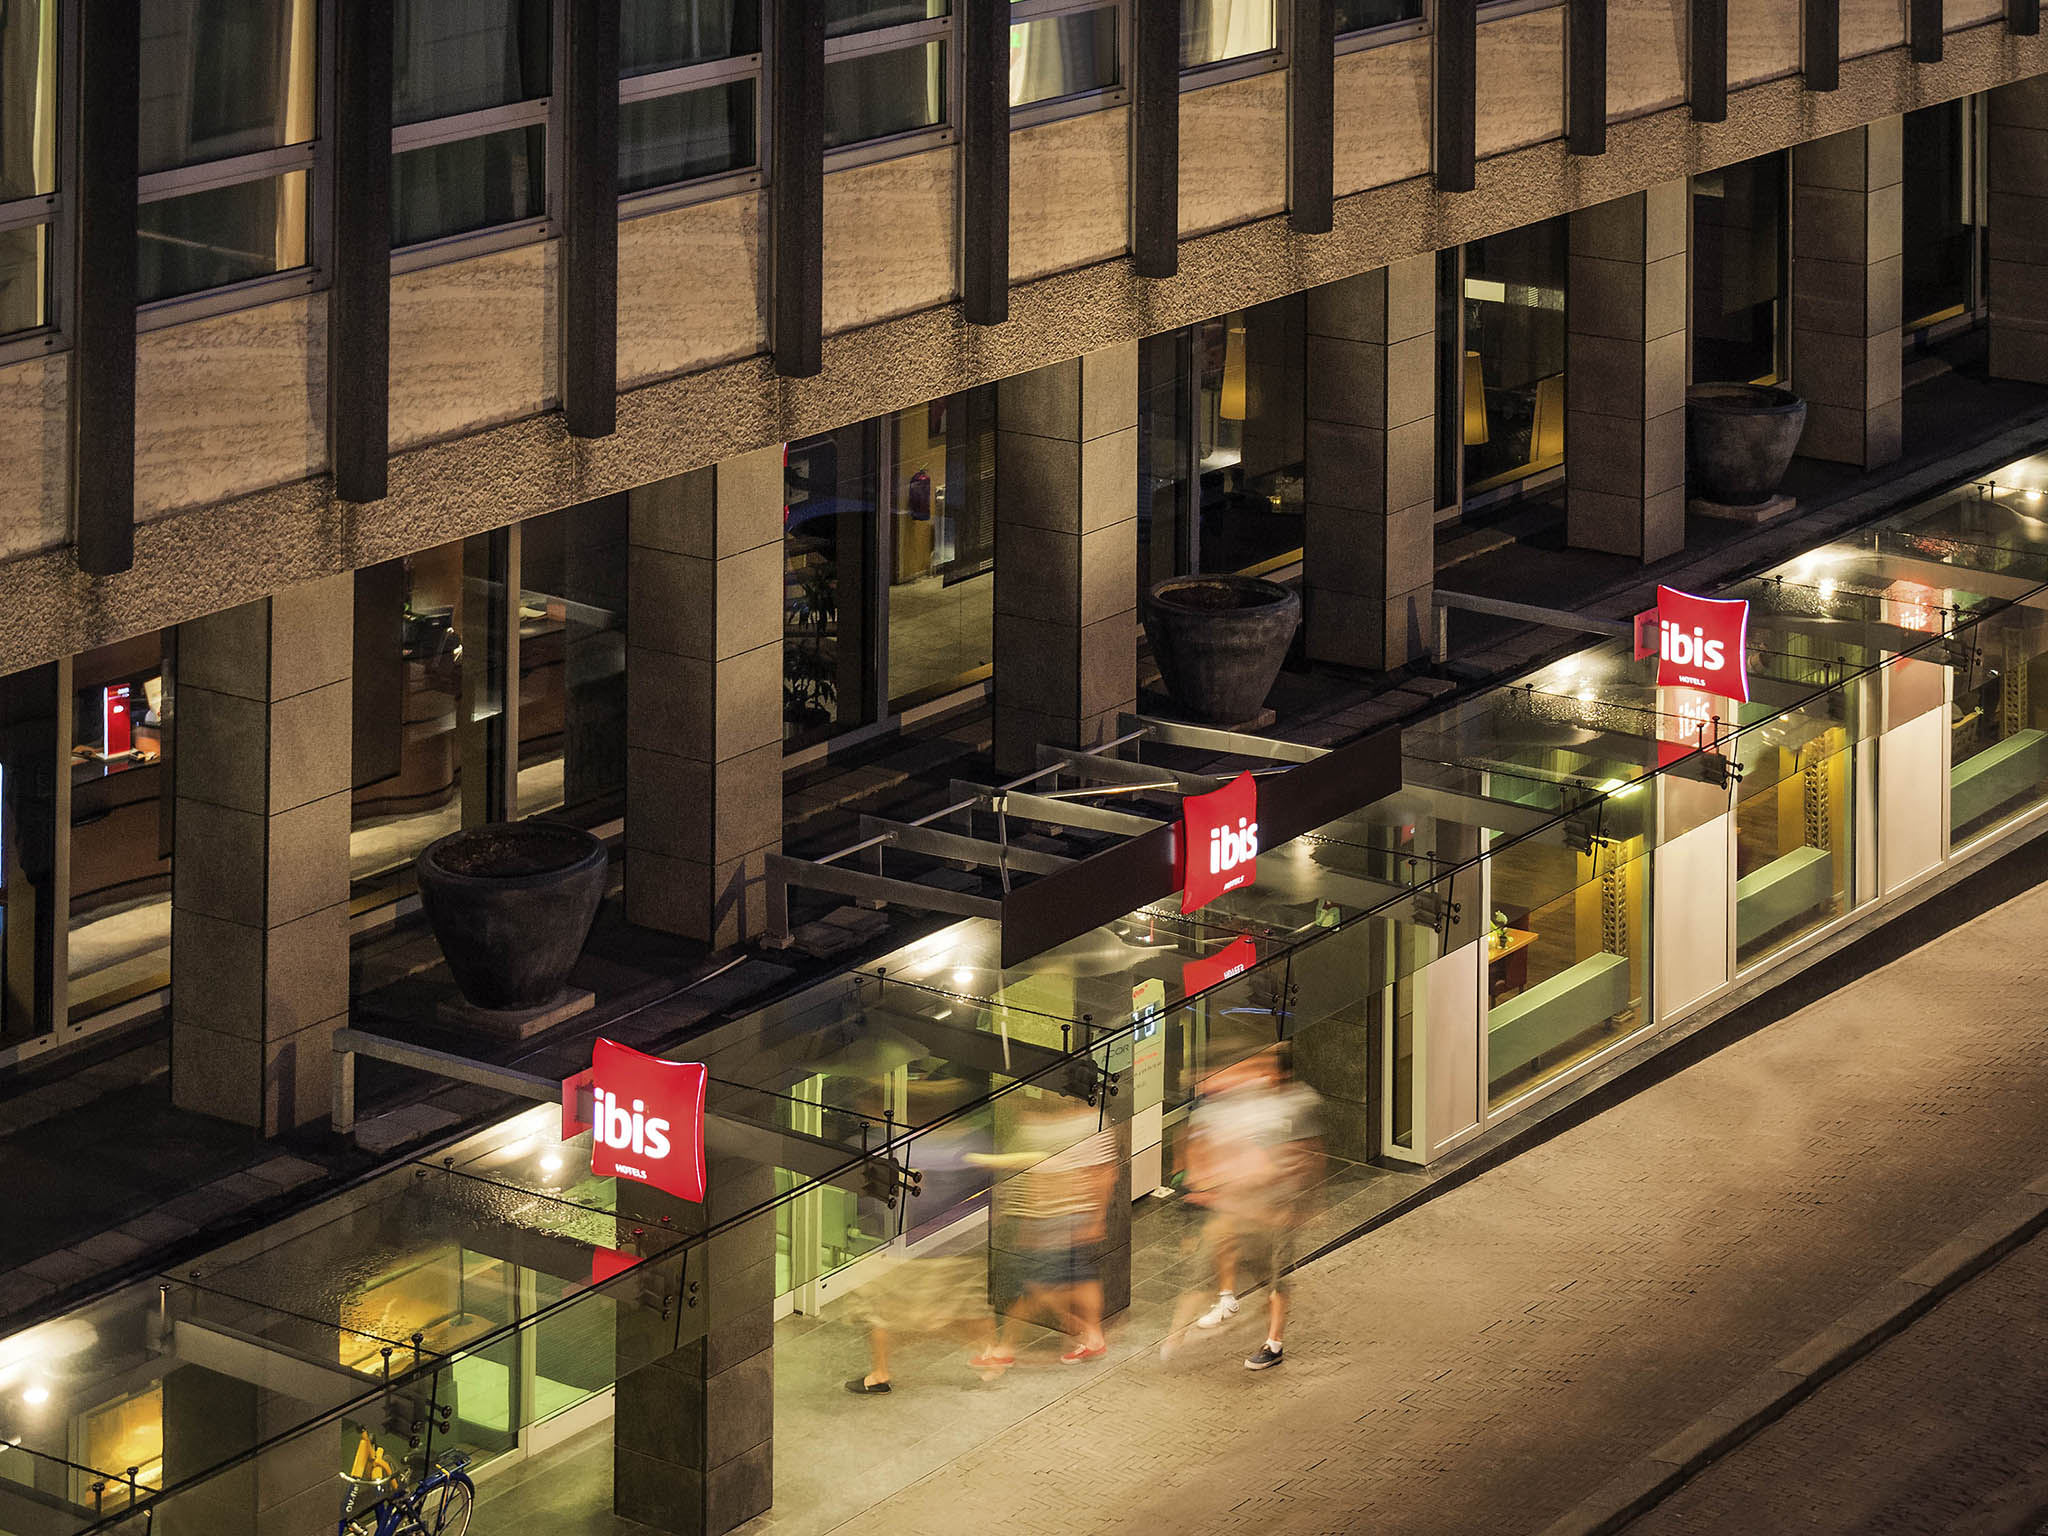 Cheap Hotel The Hague Centre ibis In The City Centre